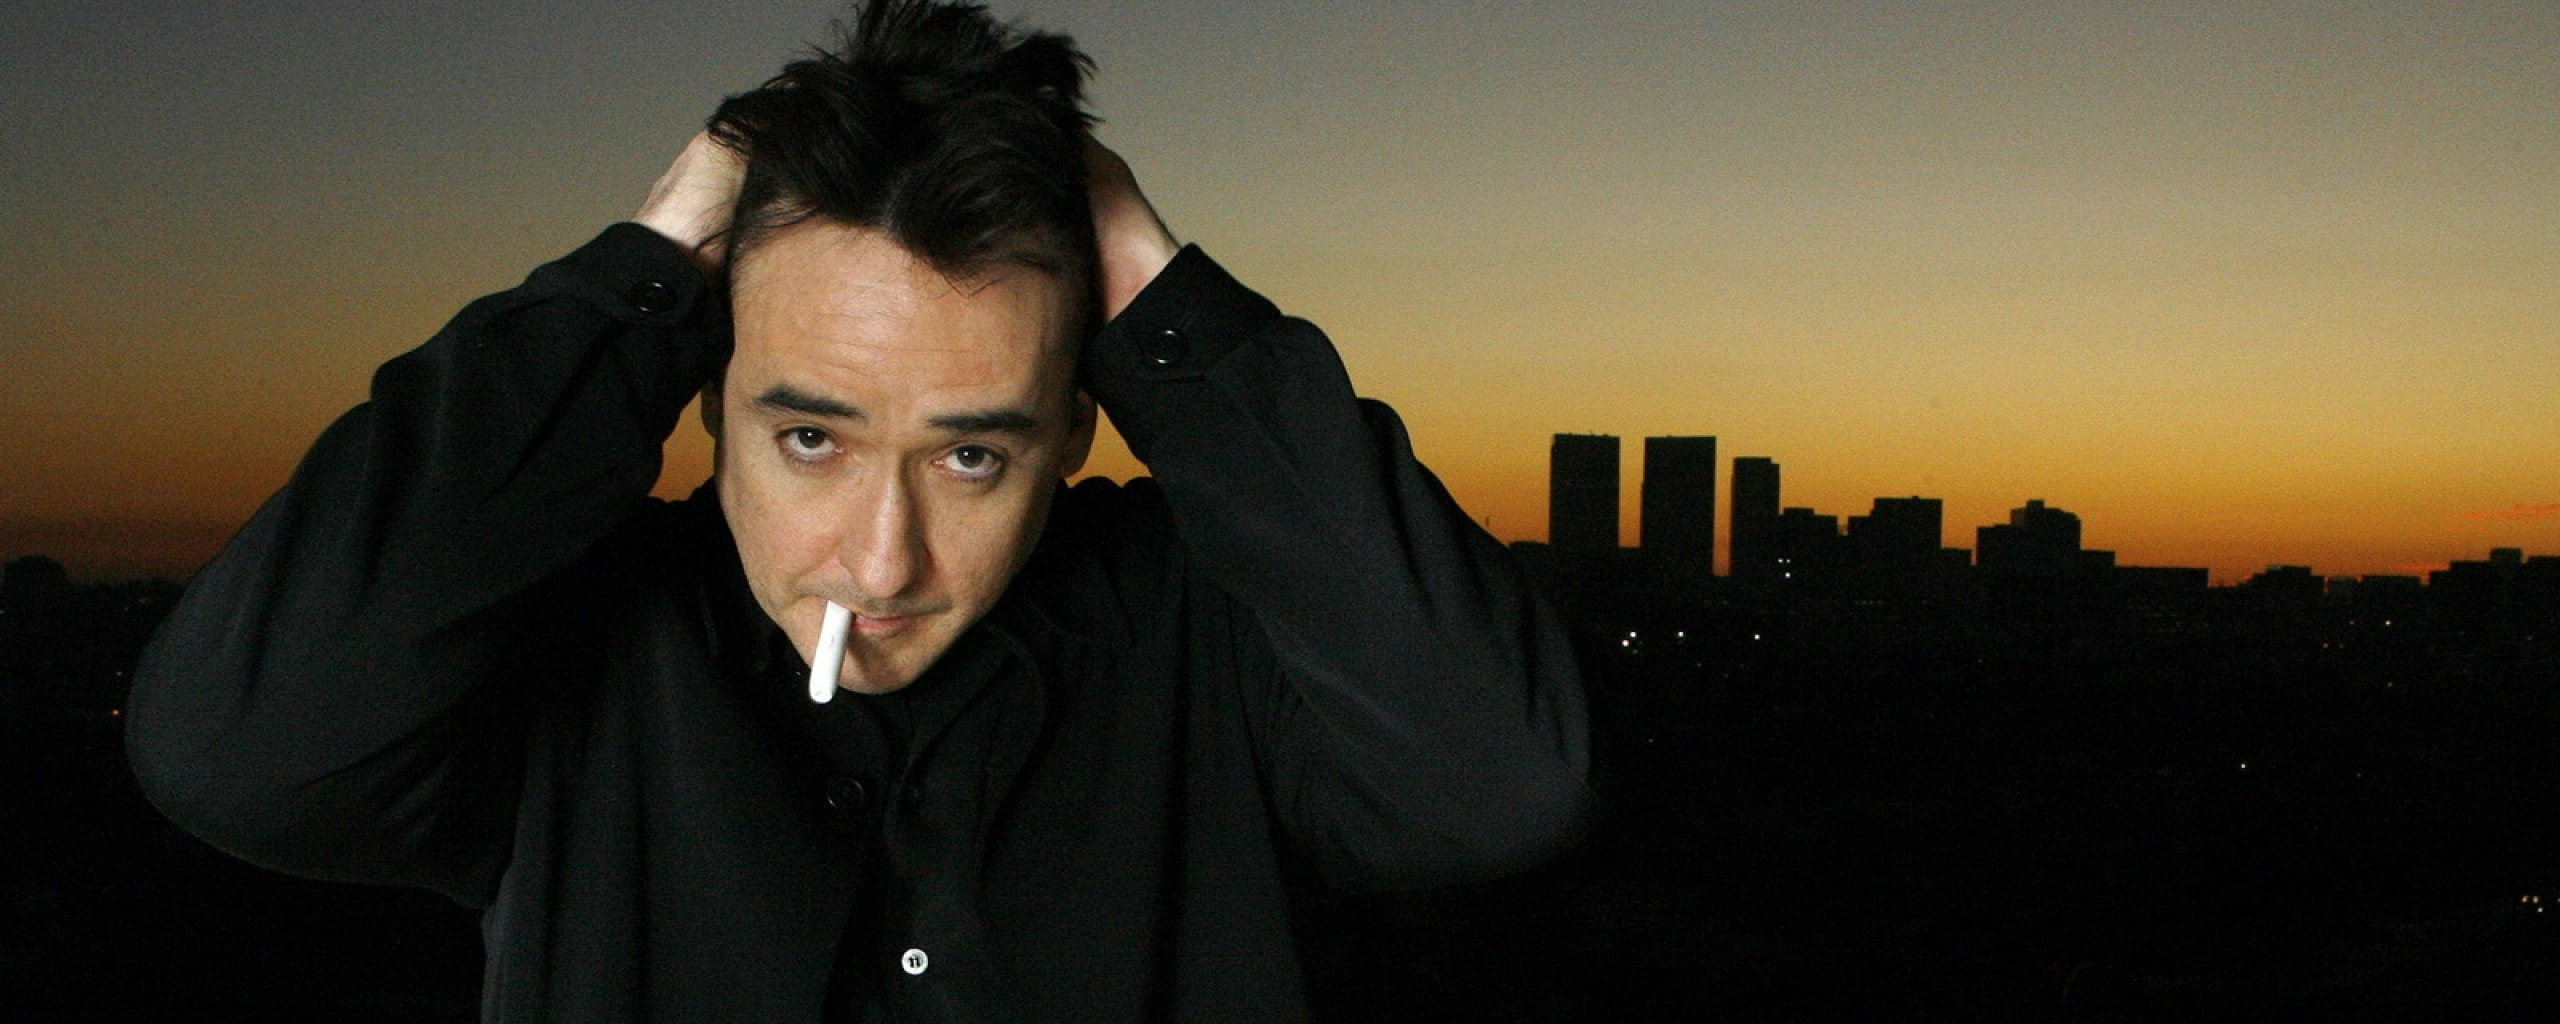 John Cusack Wallpaper